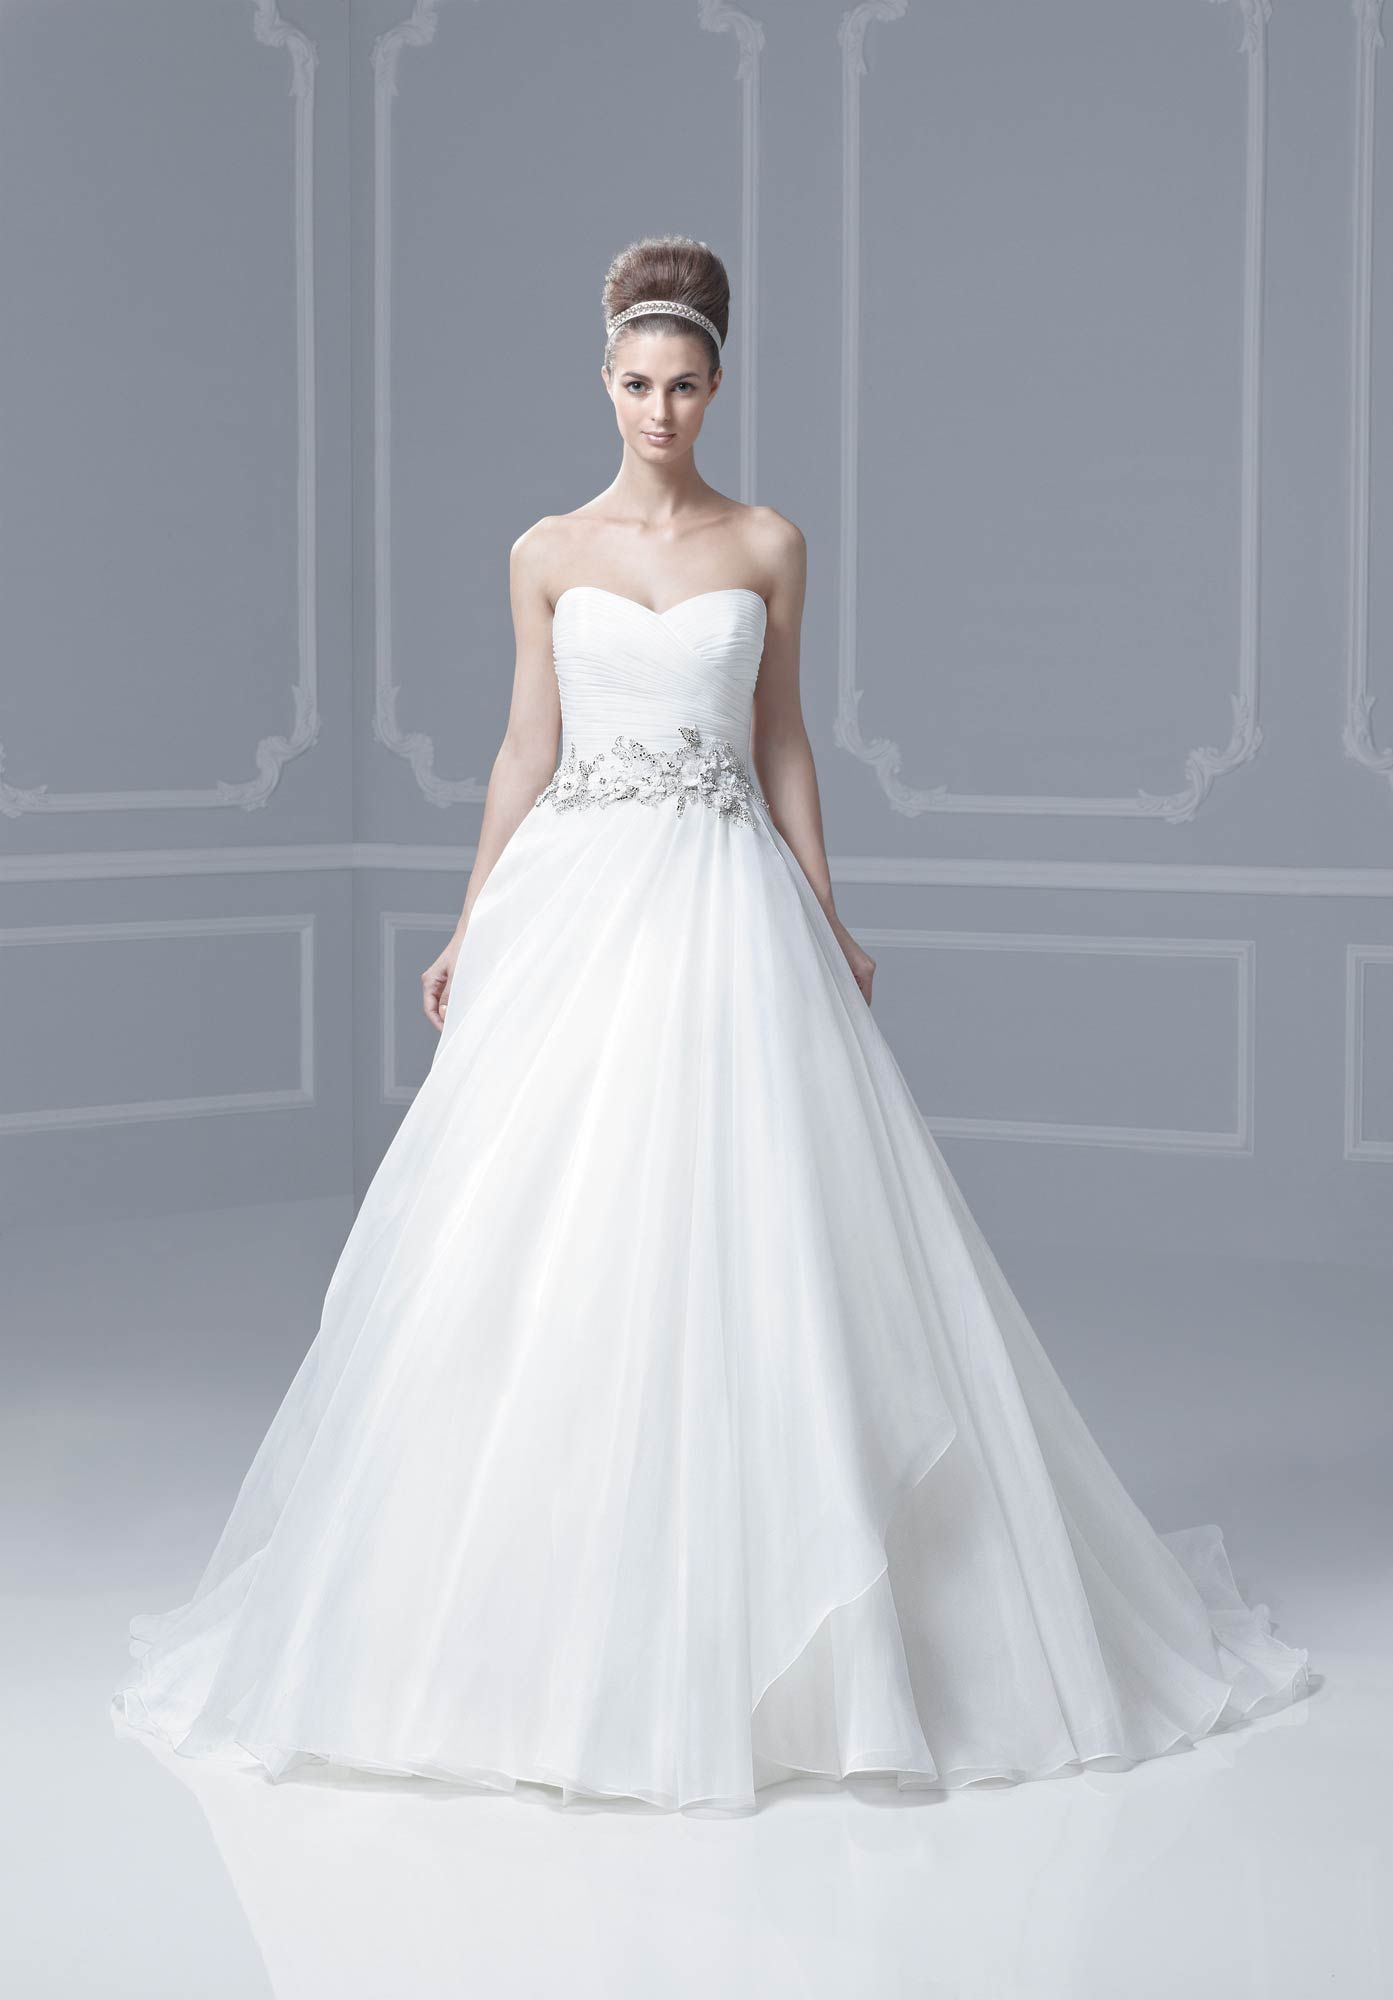 Bridal Wardrobe - Blue by Enzoni Collection - Florida: Ball gown style designer dress of Duchess Organza